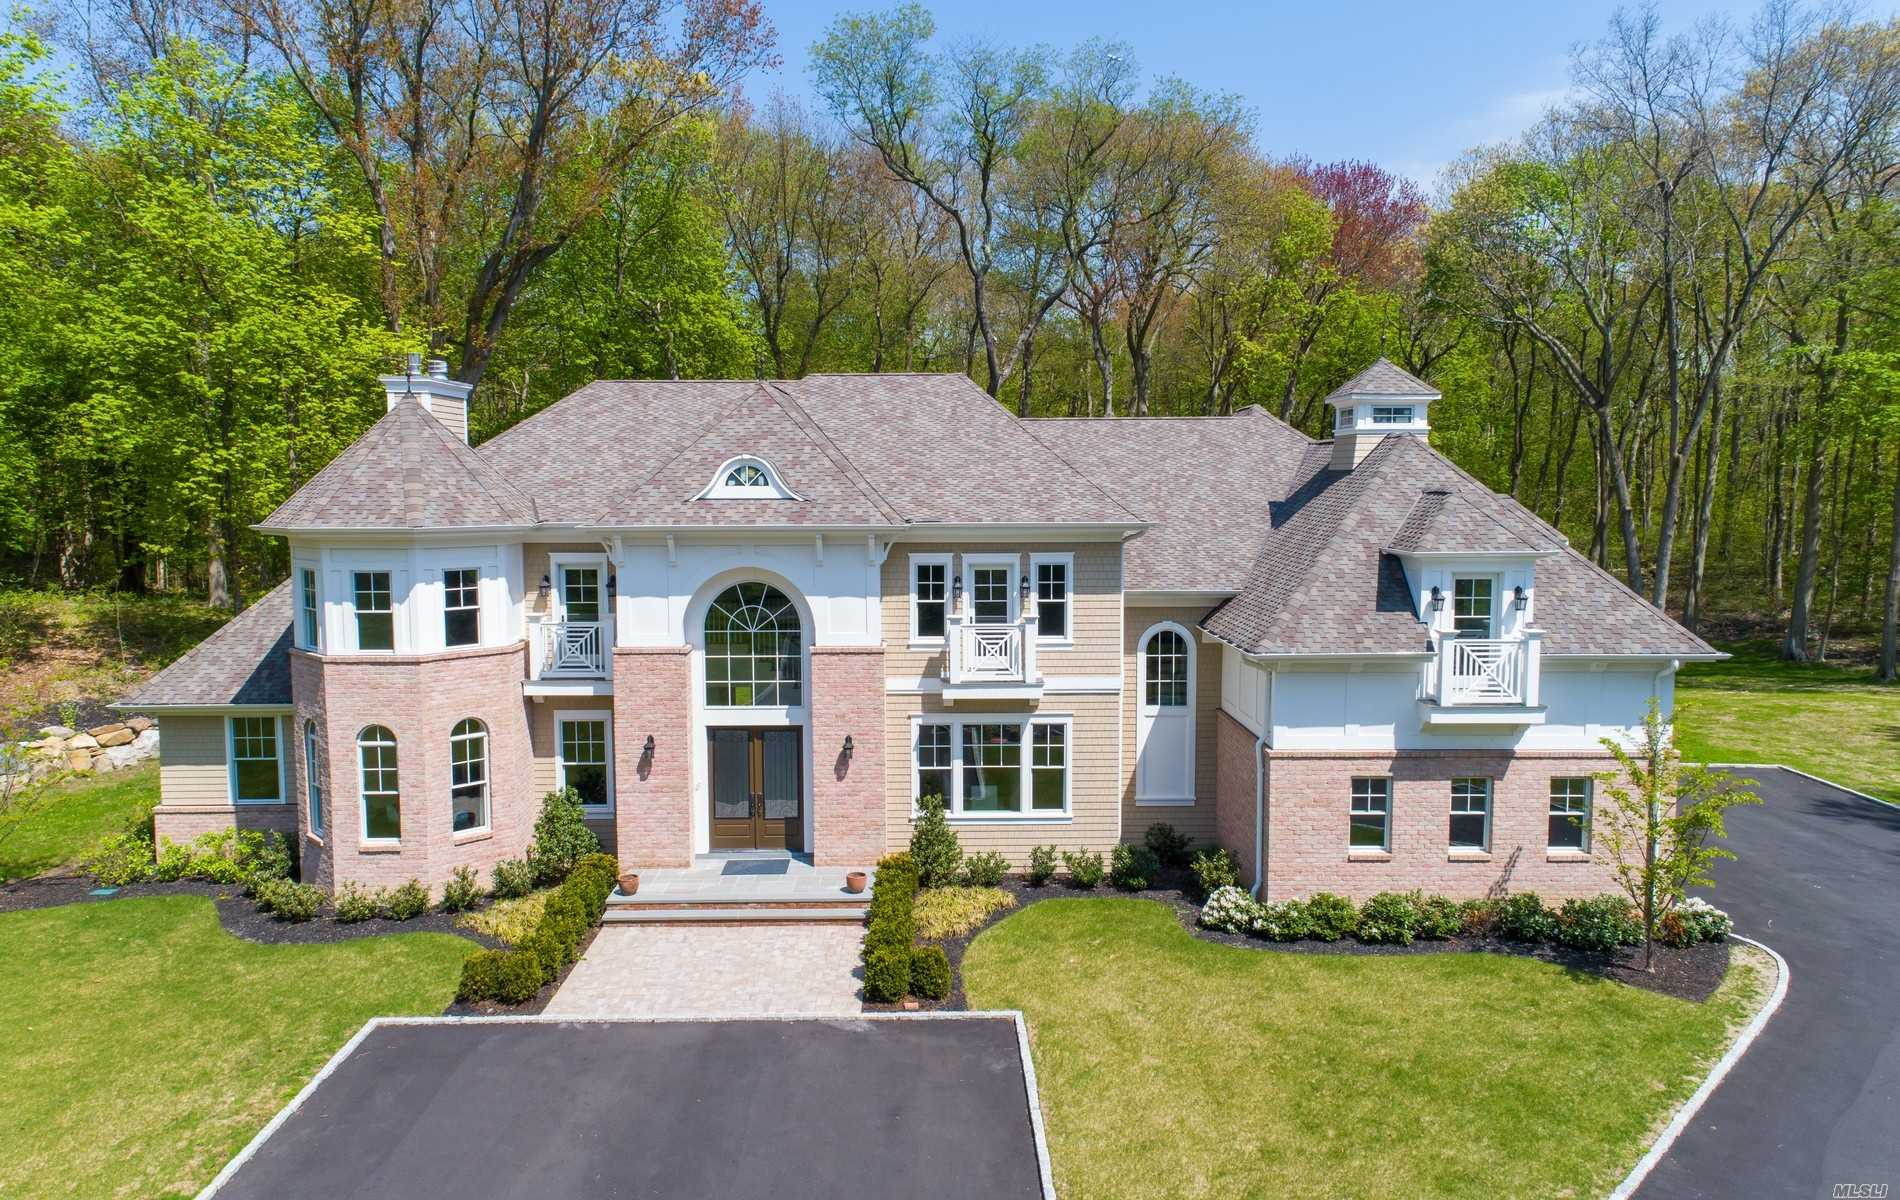 Spectacular New 6600Sqft Brick & Shingle Colonial In Famed Jericho Sd Combines Highest Quality Construction & Materials With A Refreshingly Modern & Transitional Design. Beautiful Trim And Moldings Compliment Every Room Of This Sunlit Gem. Features Include A Stunning 20' Foyer W Carrara Marble Floor, 10' Ceilings 1st Floor, 9' Ceilings 2nd Floor, 10 Ceilings Lower Level With Walk-Out, 5'' Oak Floors Throughout, Generously Proportioned Principle & Private Rooms.Set On Serene 2 Acres, 3 Car Garage